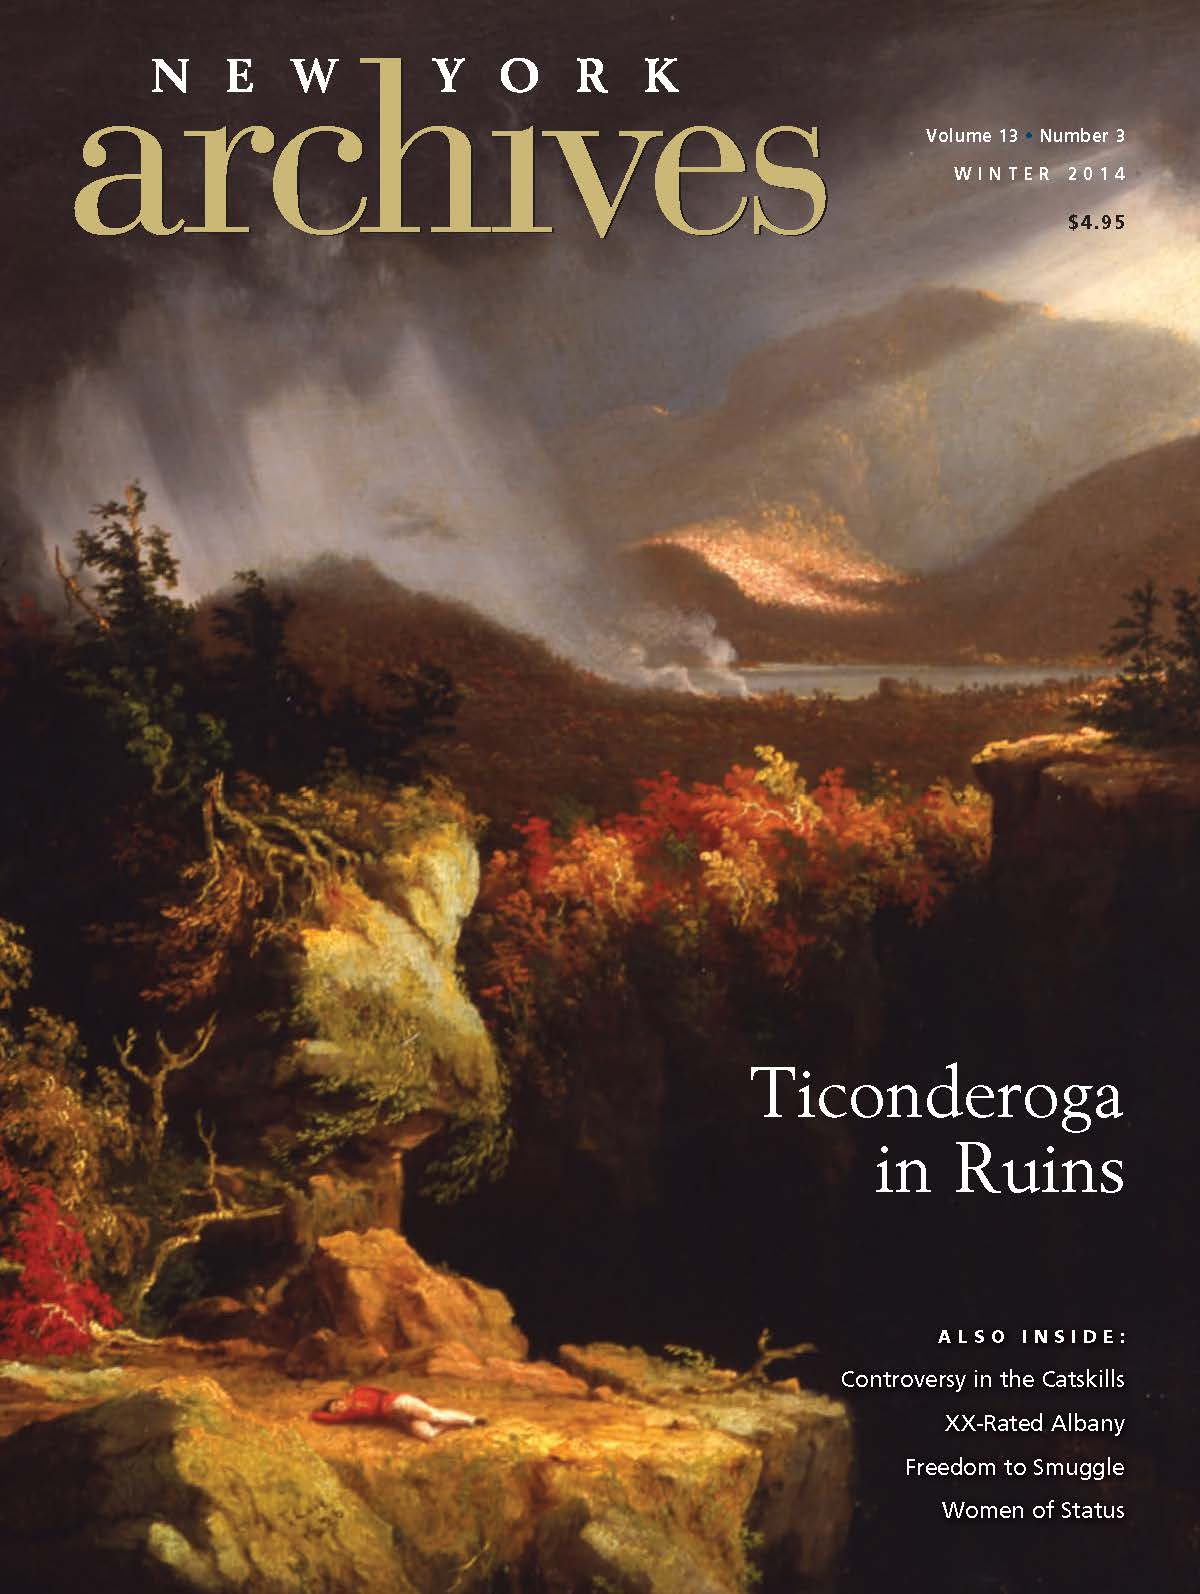 archivesmag_winter2014_cover.jpg